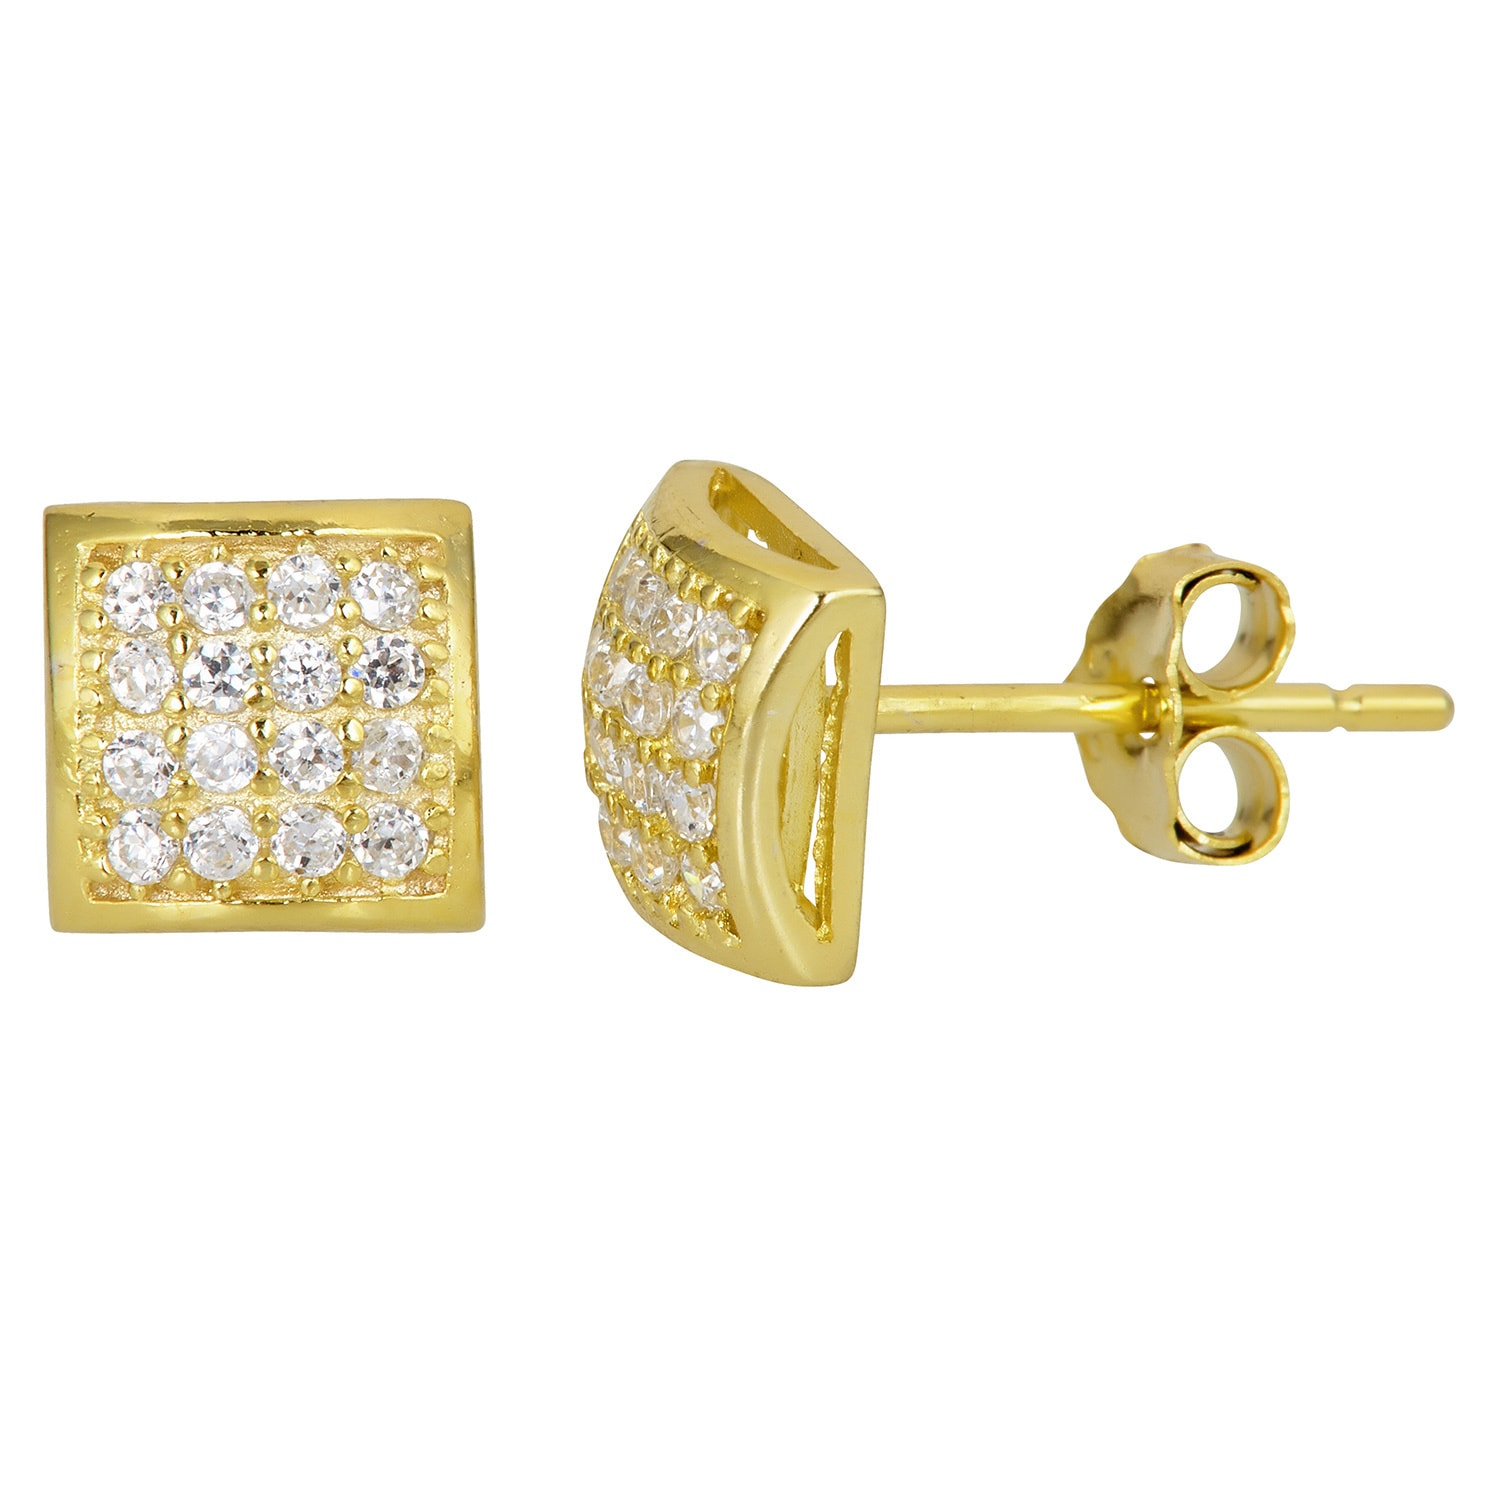 Square Micro Pave Set CZ Stud Earrings Push Back 14K Yellow Gold Clad Silver